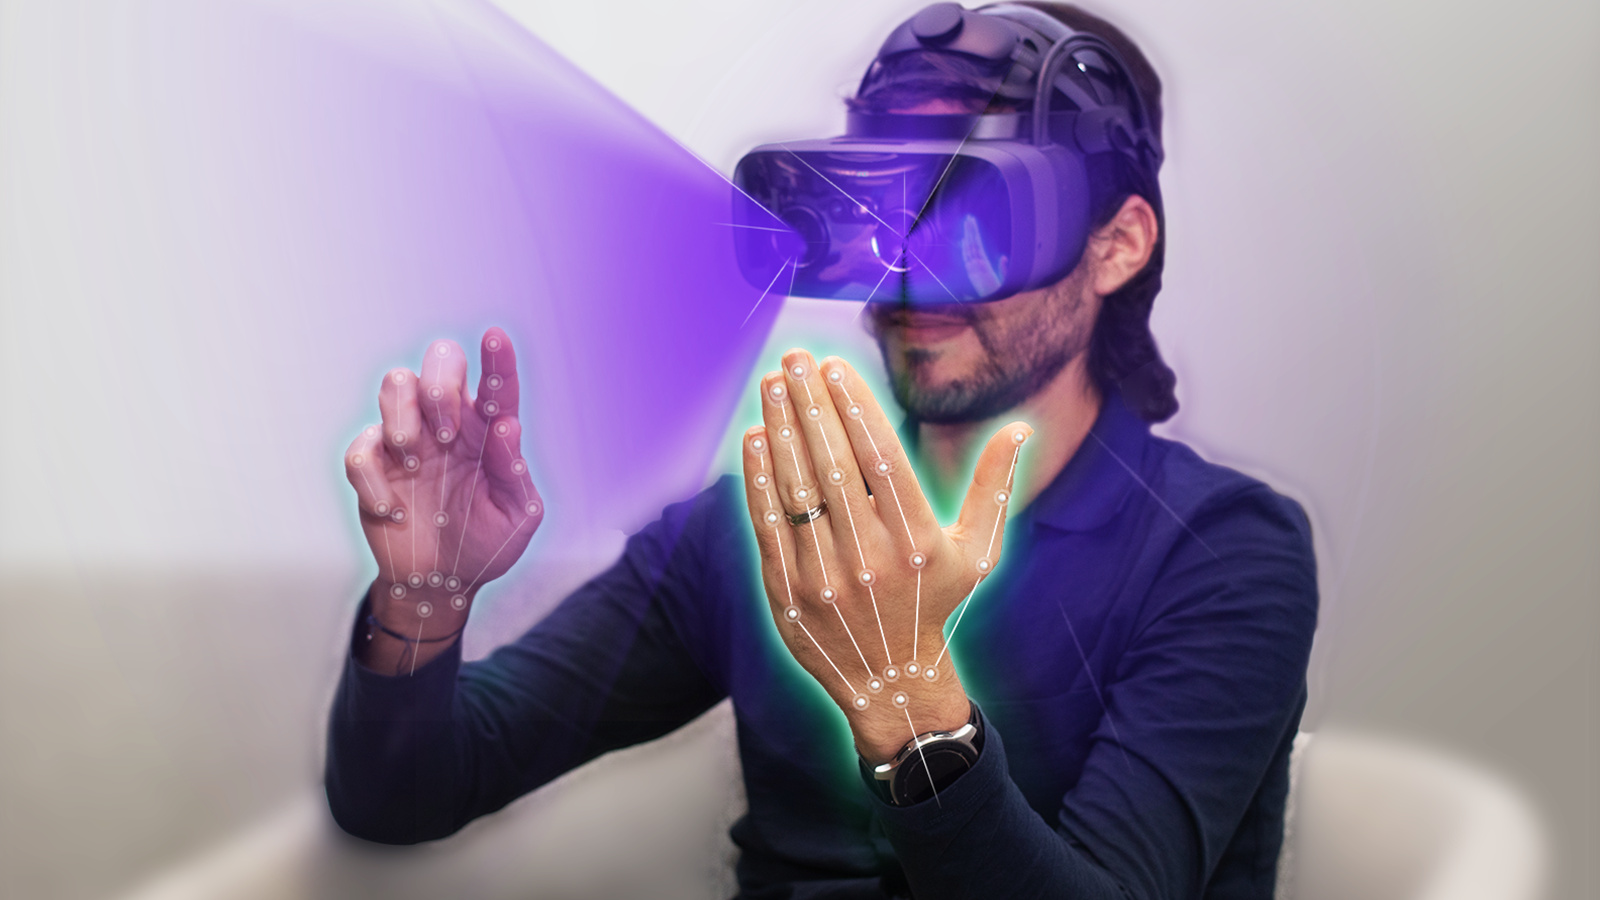 Hand tracking technology in virtual reality